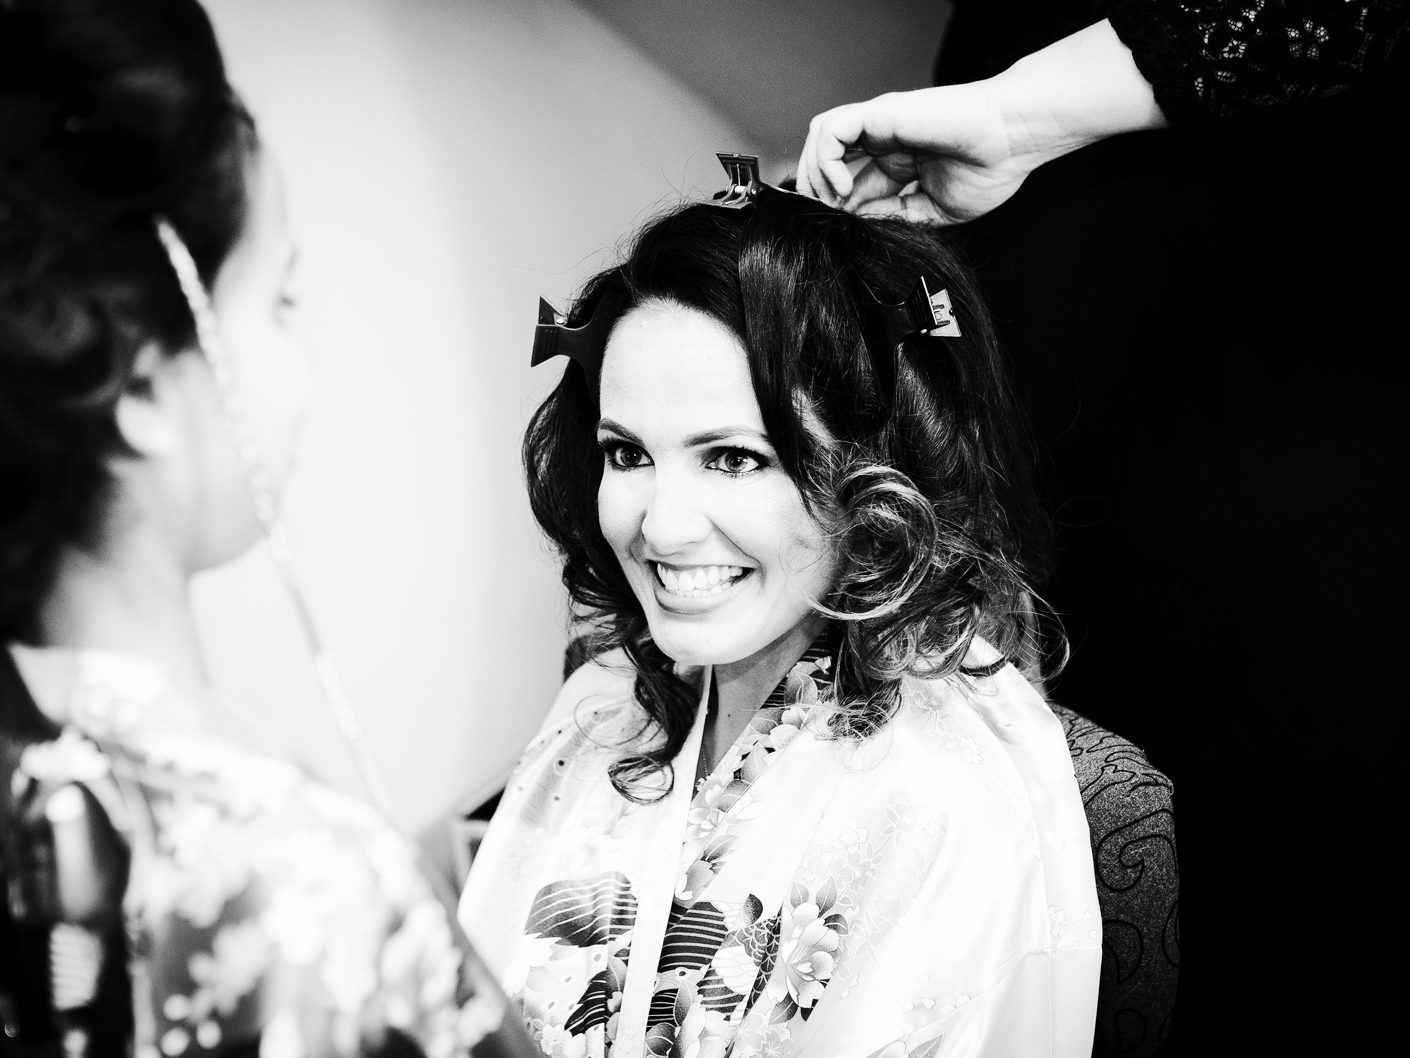 wedding-photography-before-the-civil-ceremony-in-oddfellows-hotel-chester-cheshire